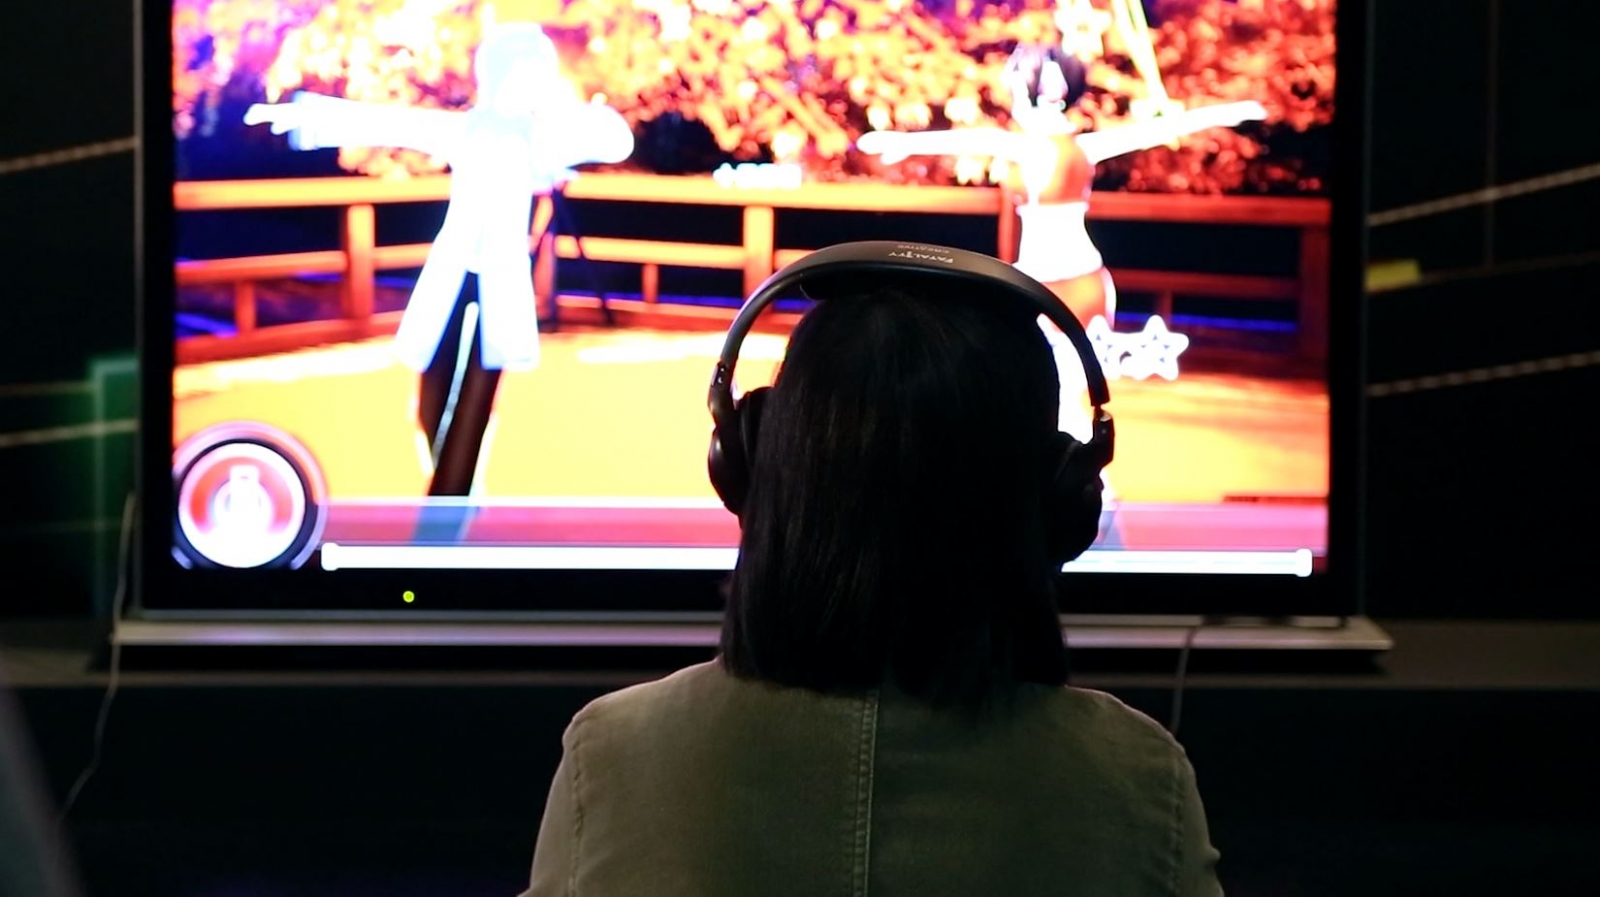 Sexism in Video Games: We Ask Women Gamers What They Think